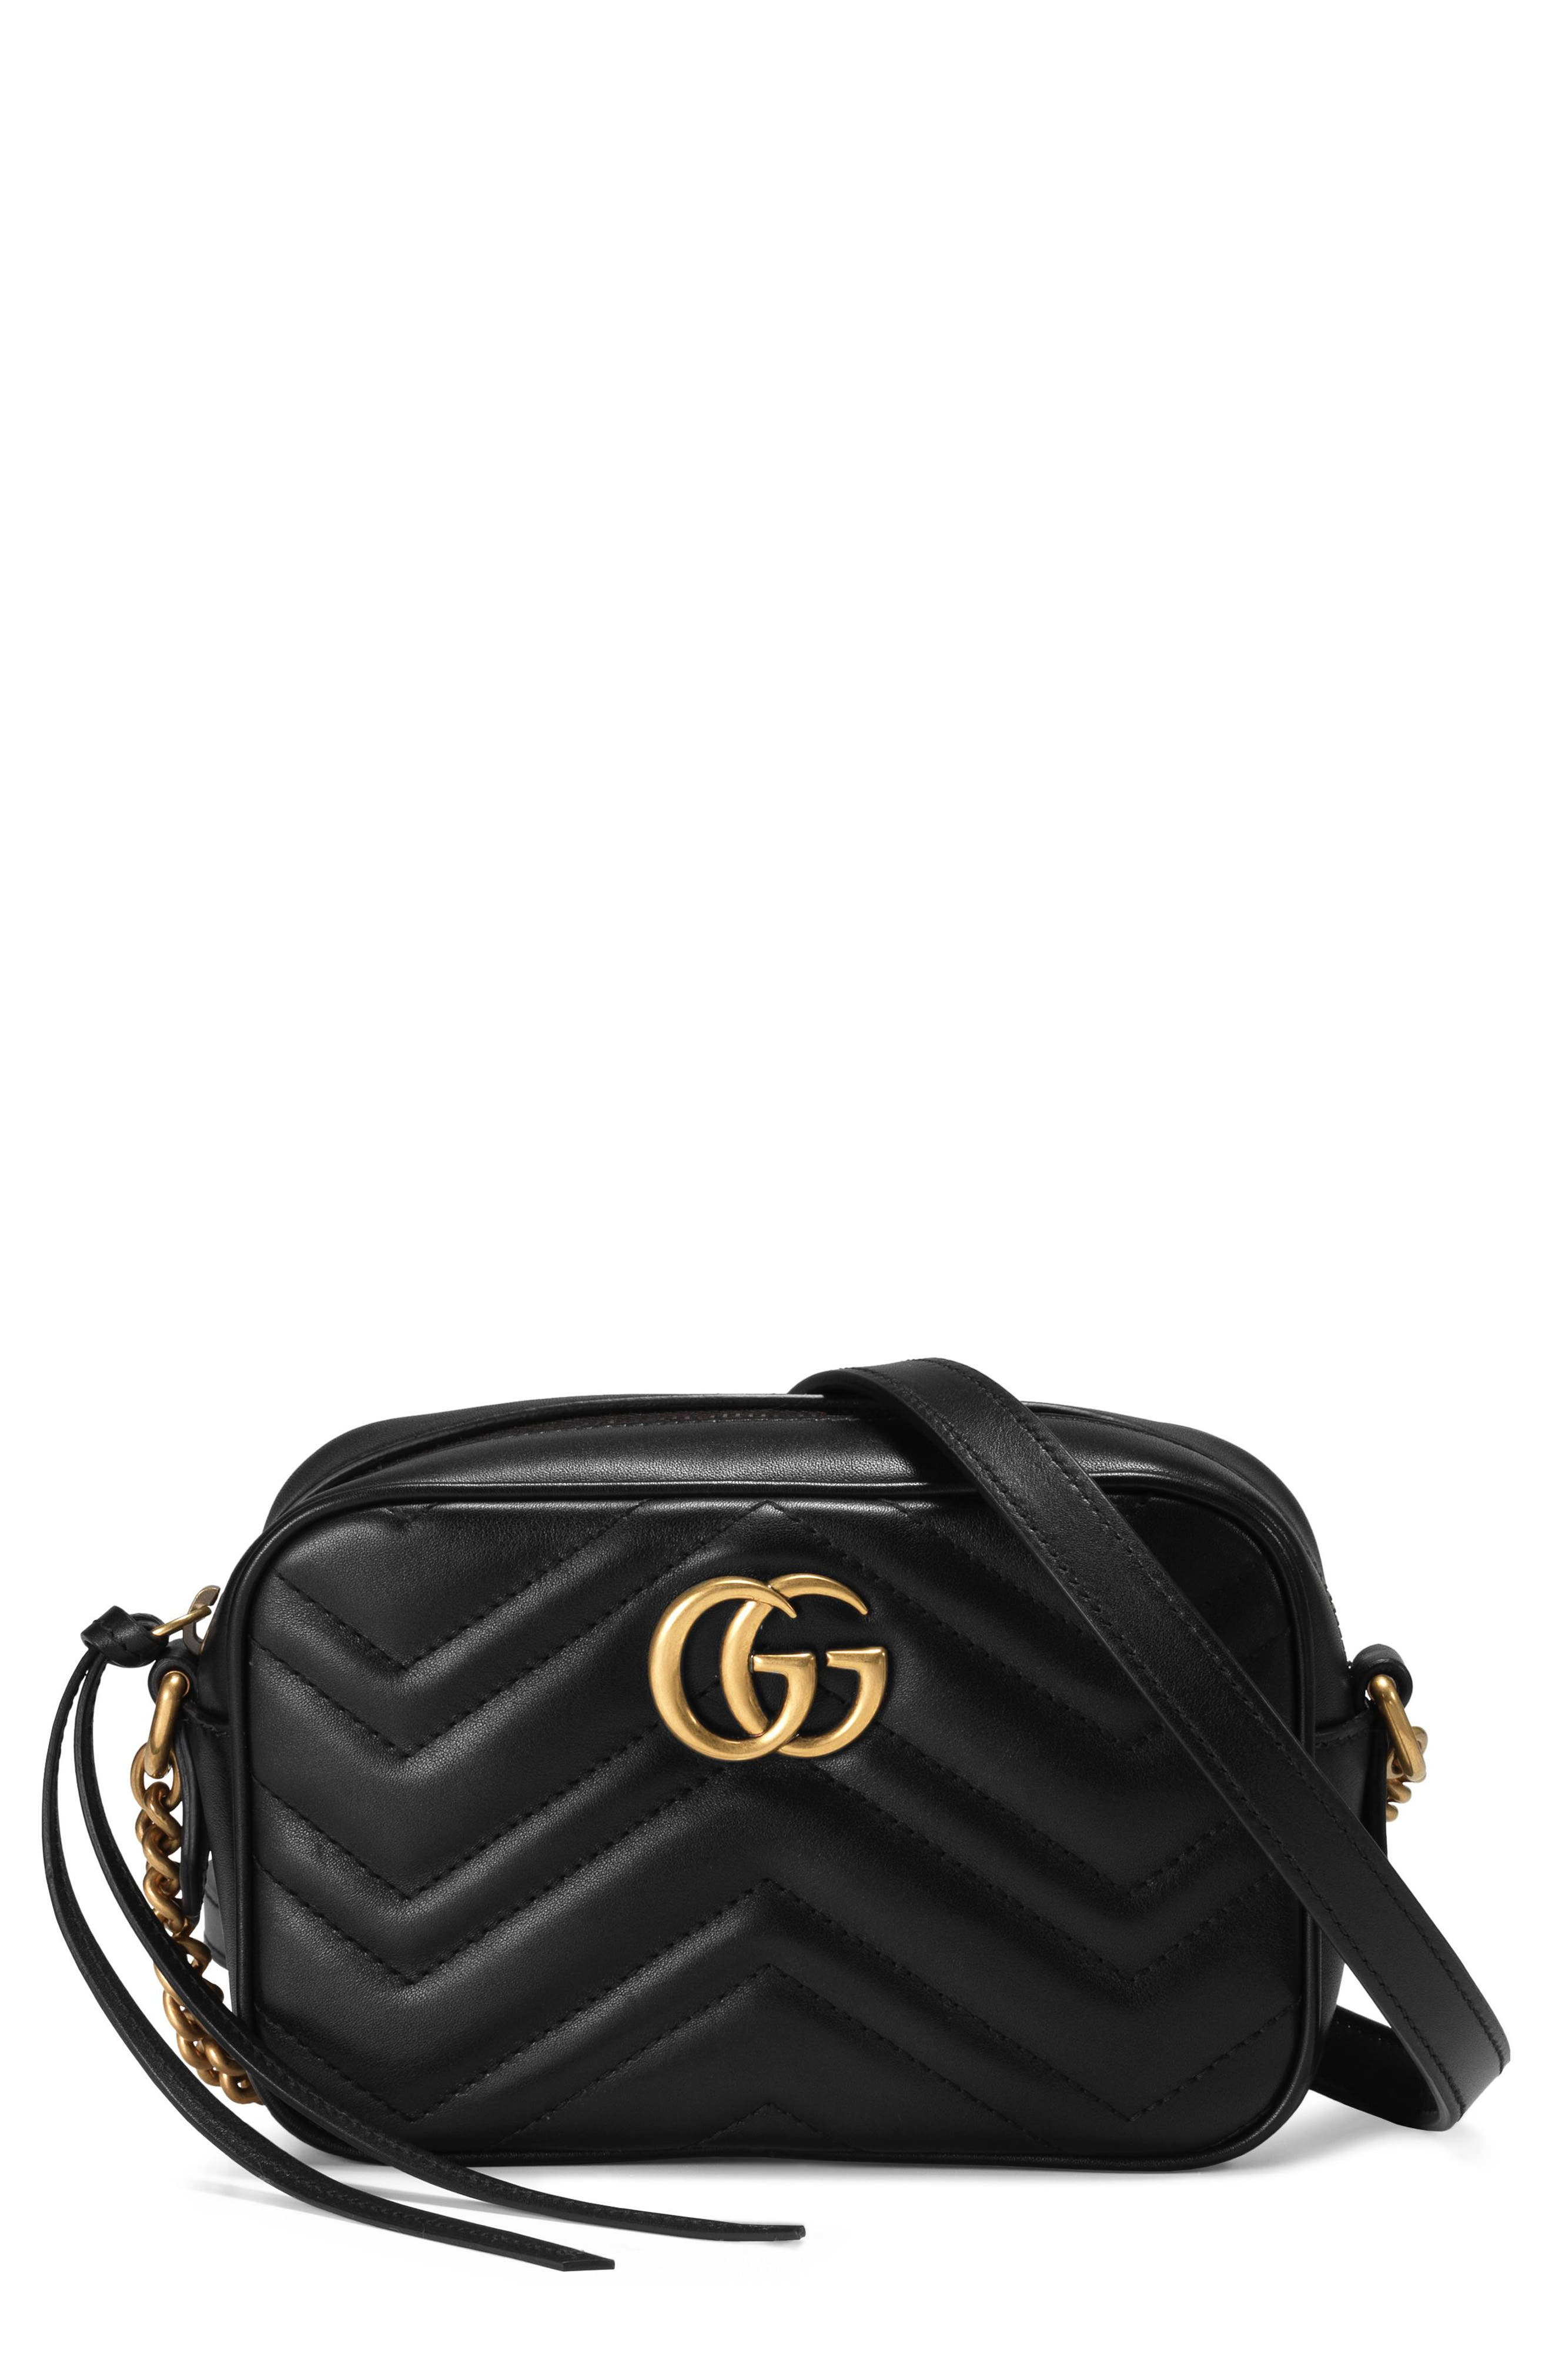 GG Marmont 2.0 Matelassé Leather Shoulder Bag,                             Main thumbnail 1, color,                             NERO